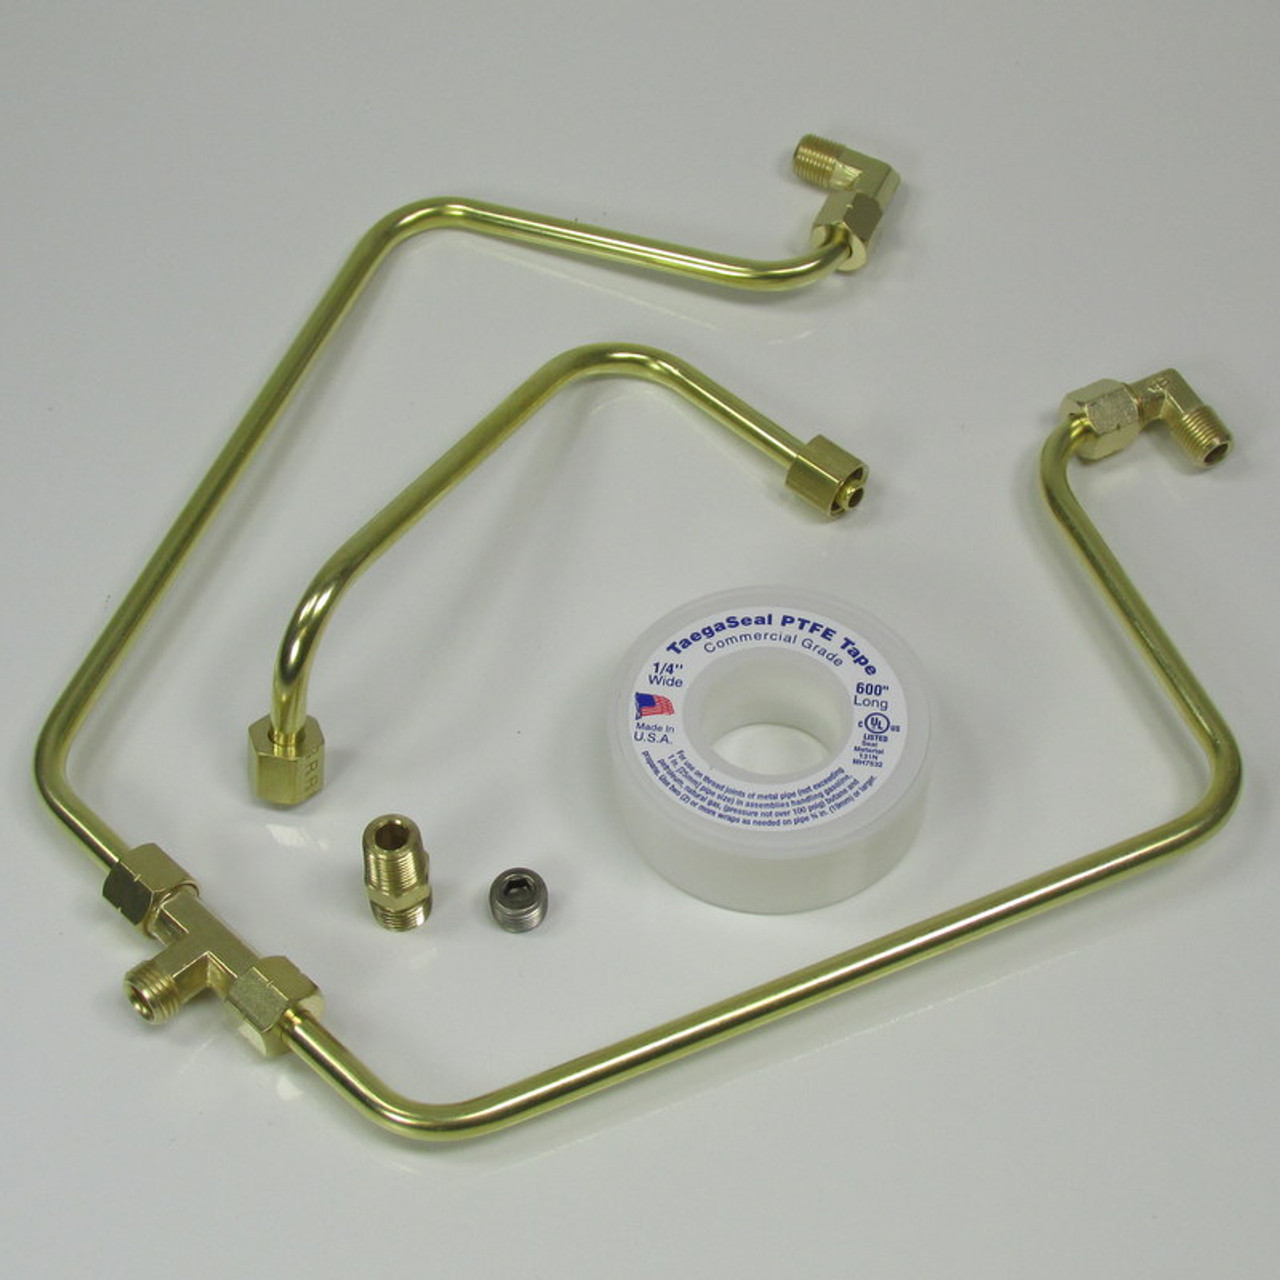 OLD-STF - Brass Rocker Box Split Oil Line for 1966-1984 Harley Shovelheads  - MADE IN THE USA